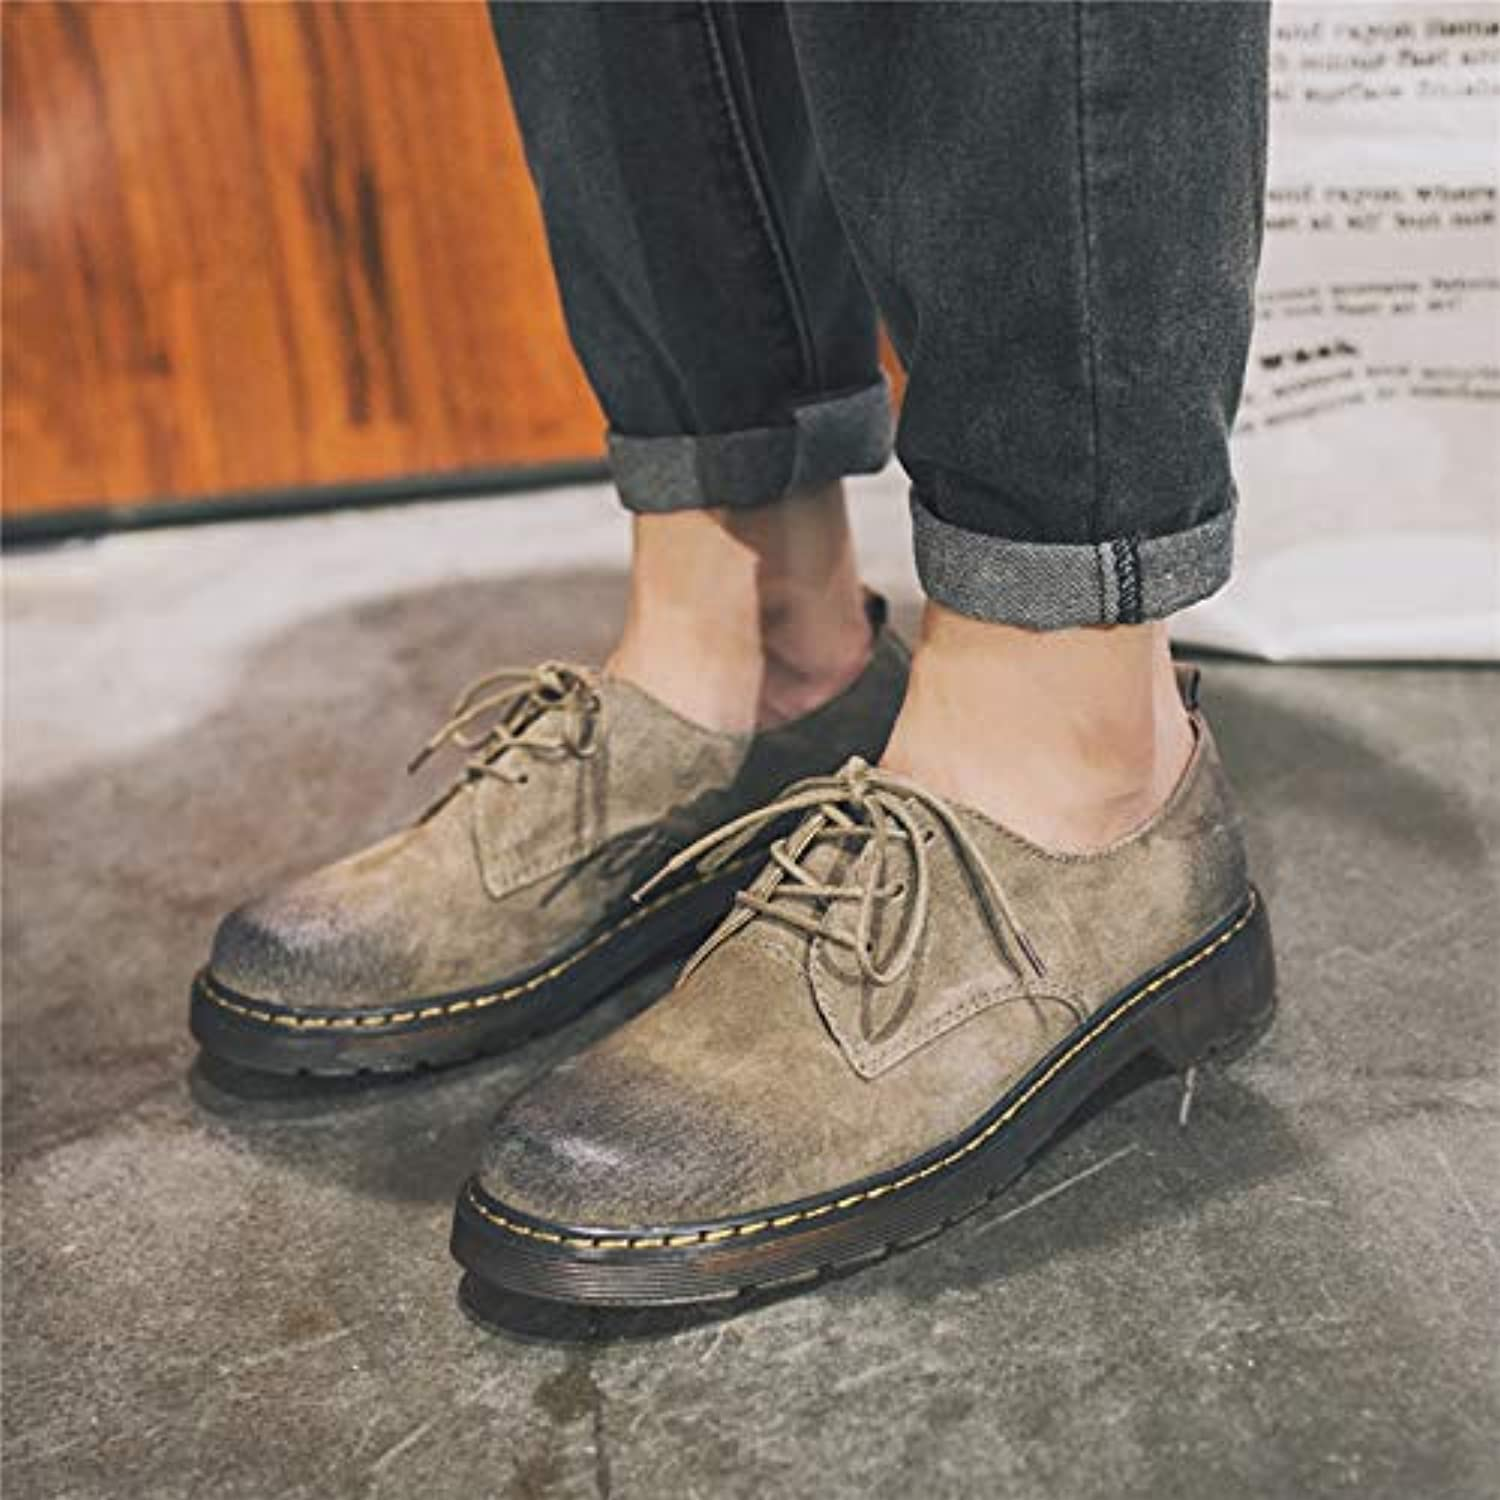 LOVDRAM Boots Men's Fashion Low To Help Leather Martin Boots Men'S Port Wind Retro Big shoes Men'S Boots shoes Fashion Boots